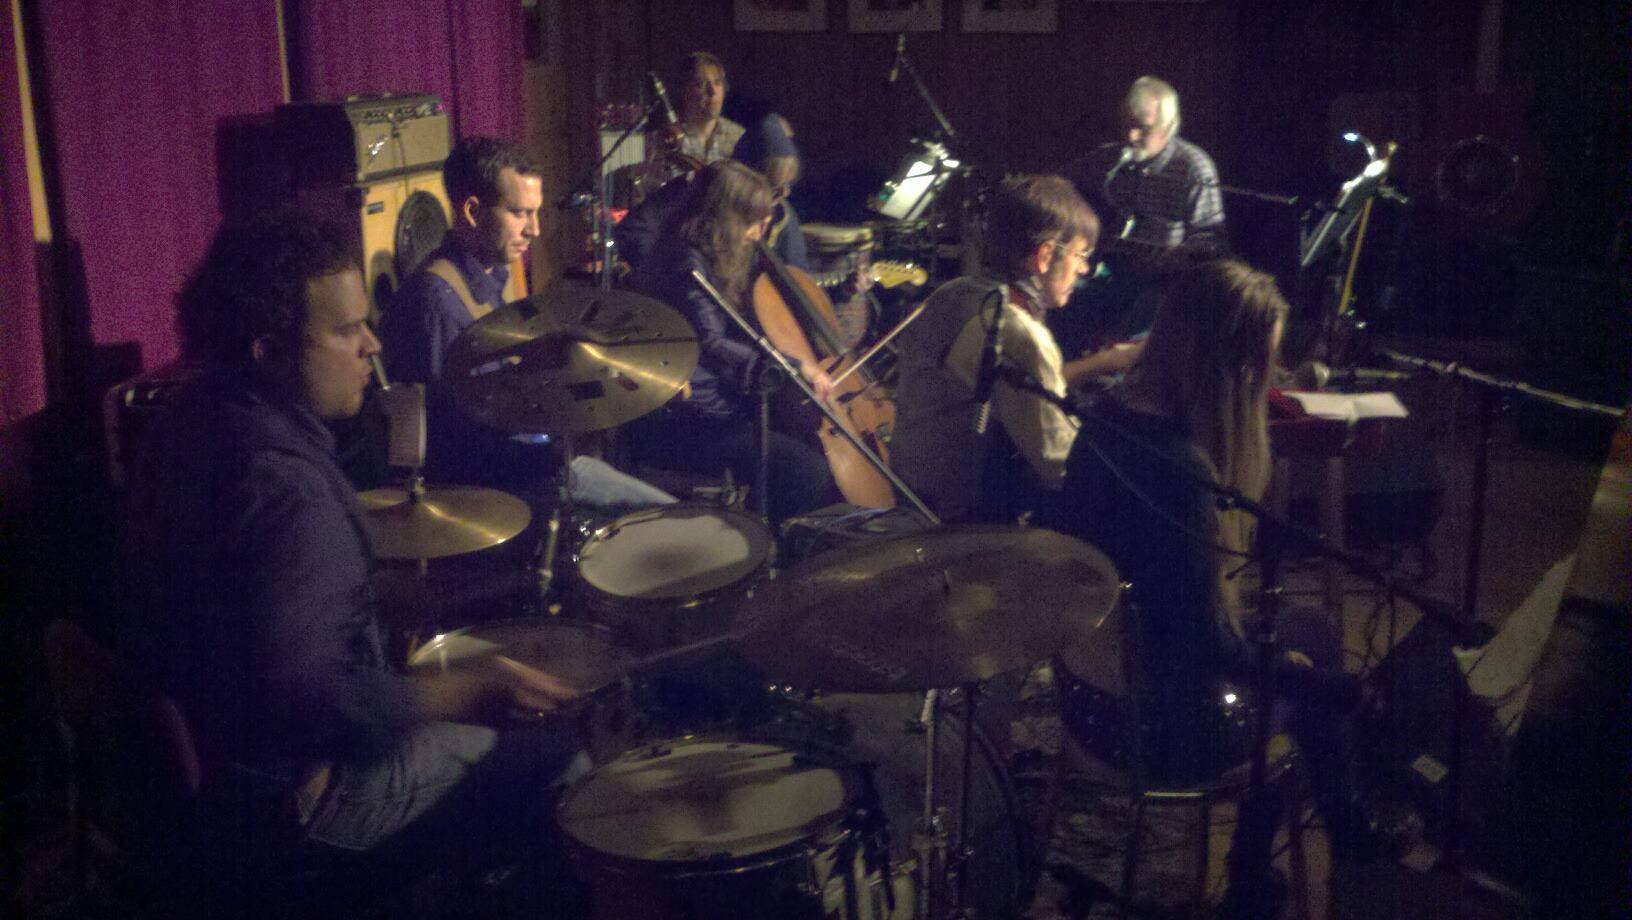 Duke McVinnie Band (orchestra) featuring Malcolm Burn and Sandrine at The Bearsville Theater in Bearsville NY